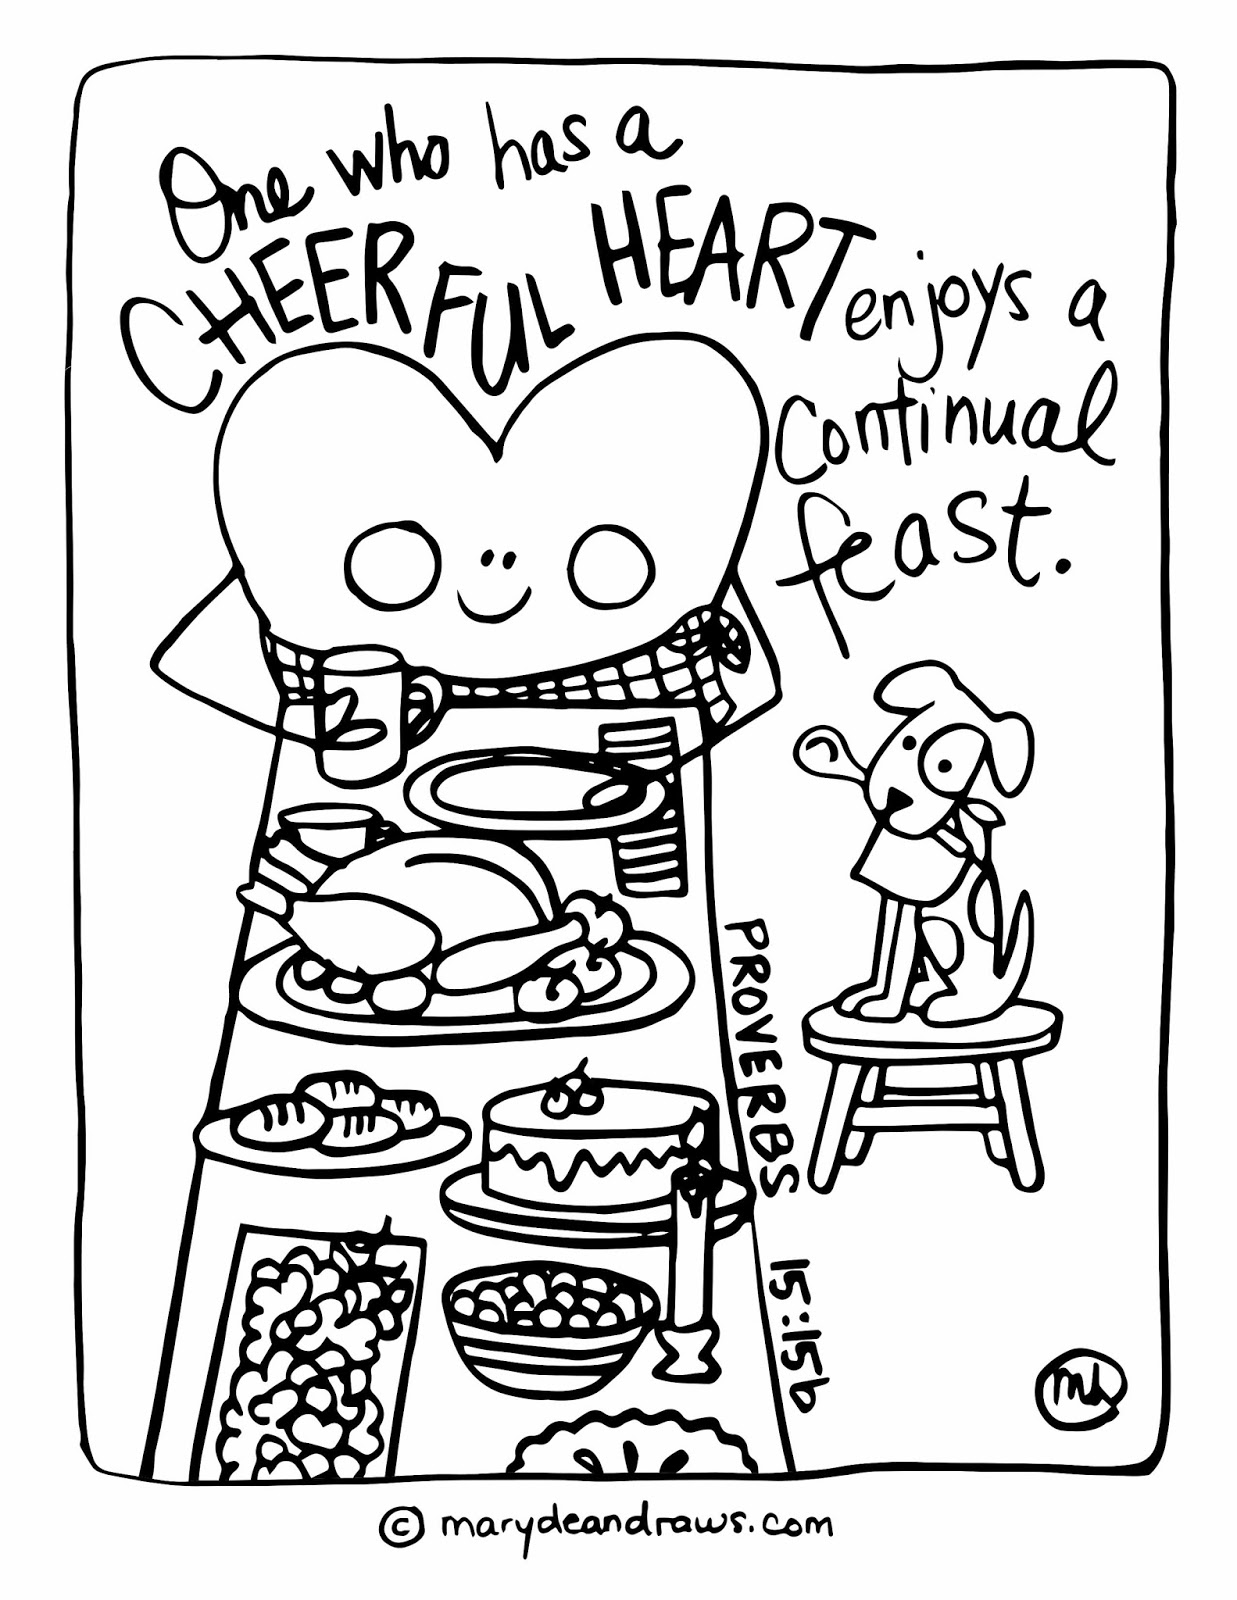 Cheerful Heart Continual Feast Free Thanksgiving